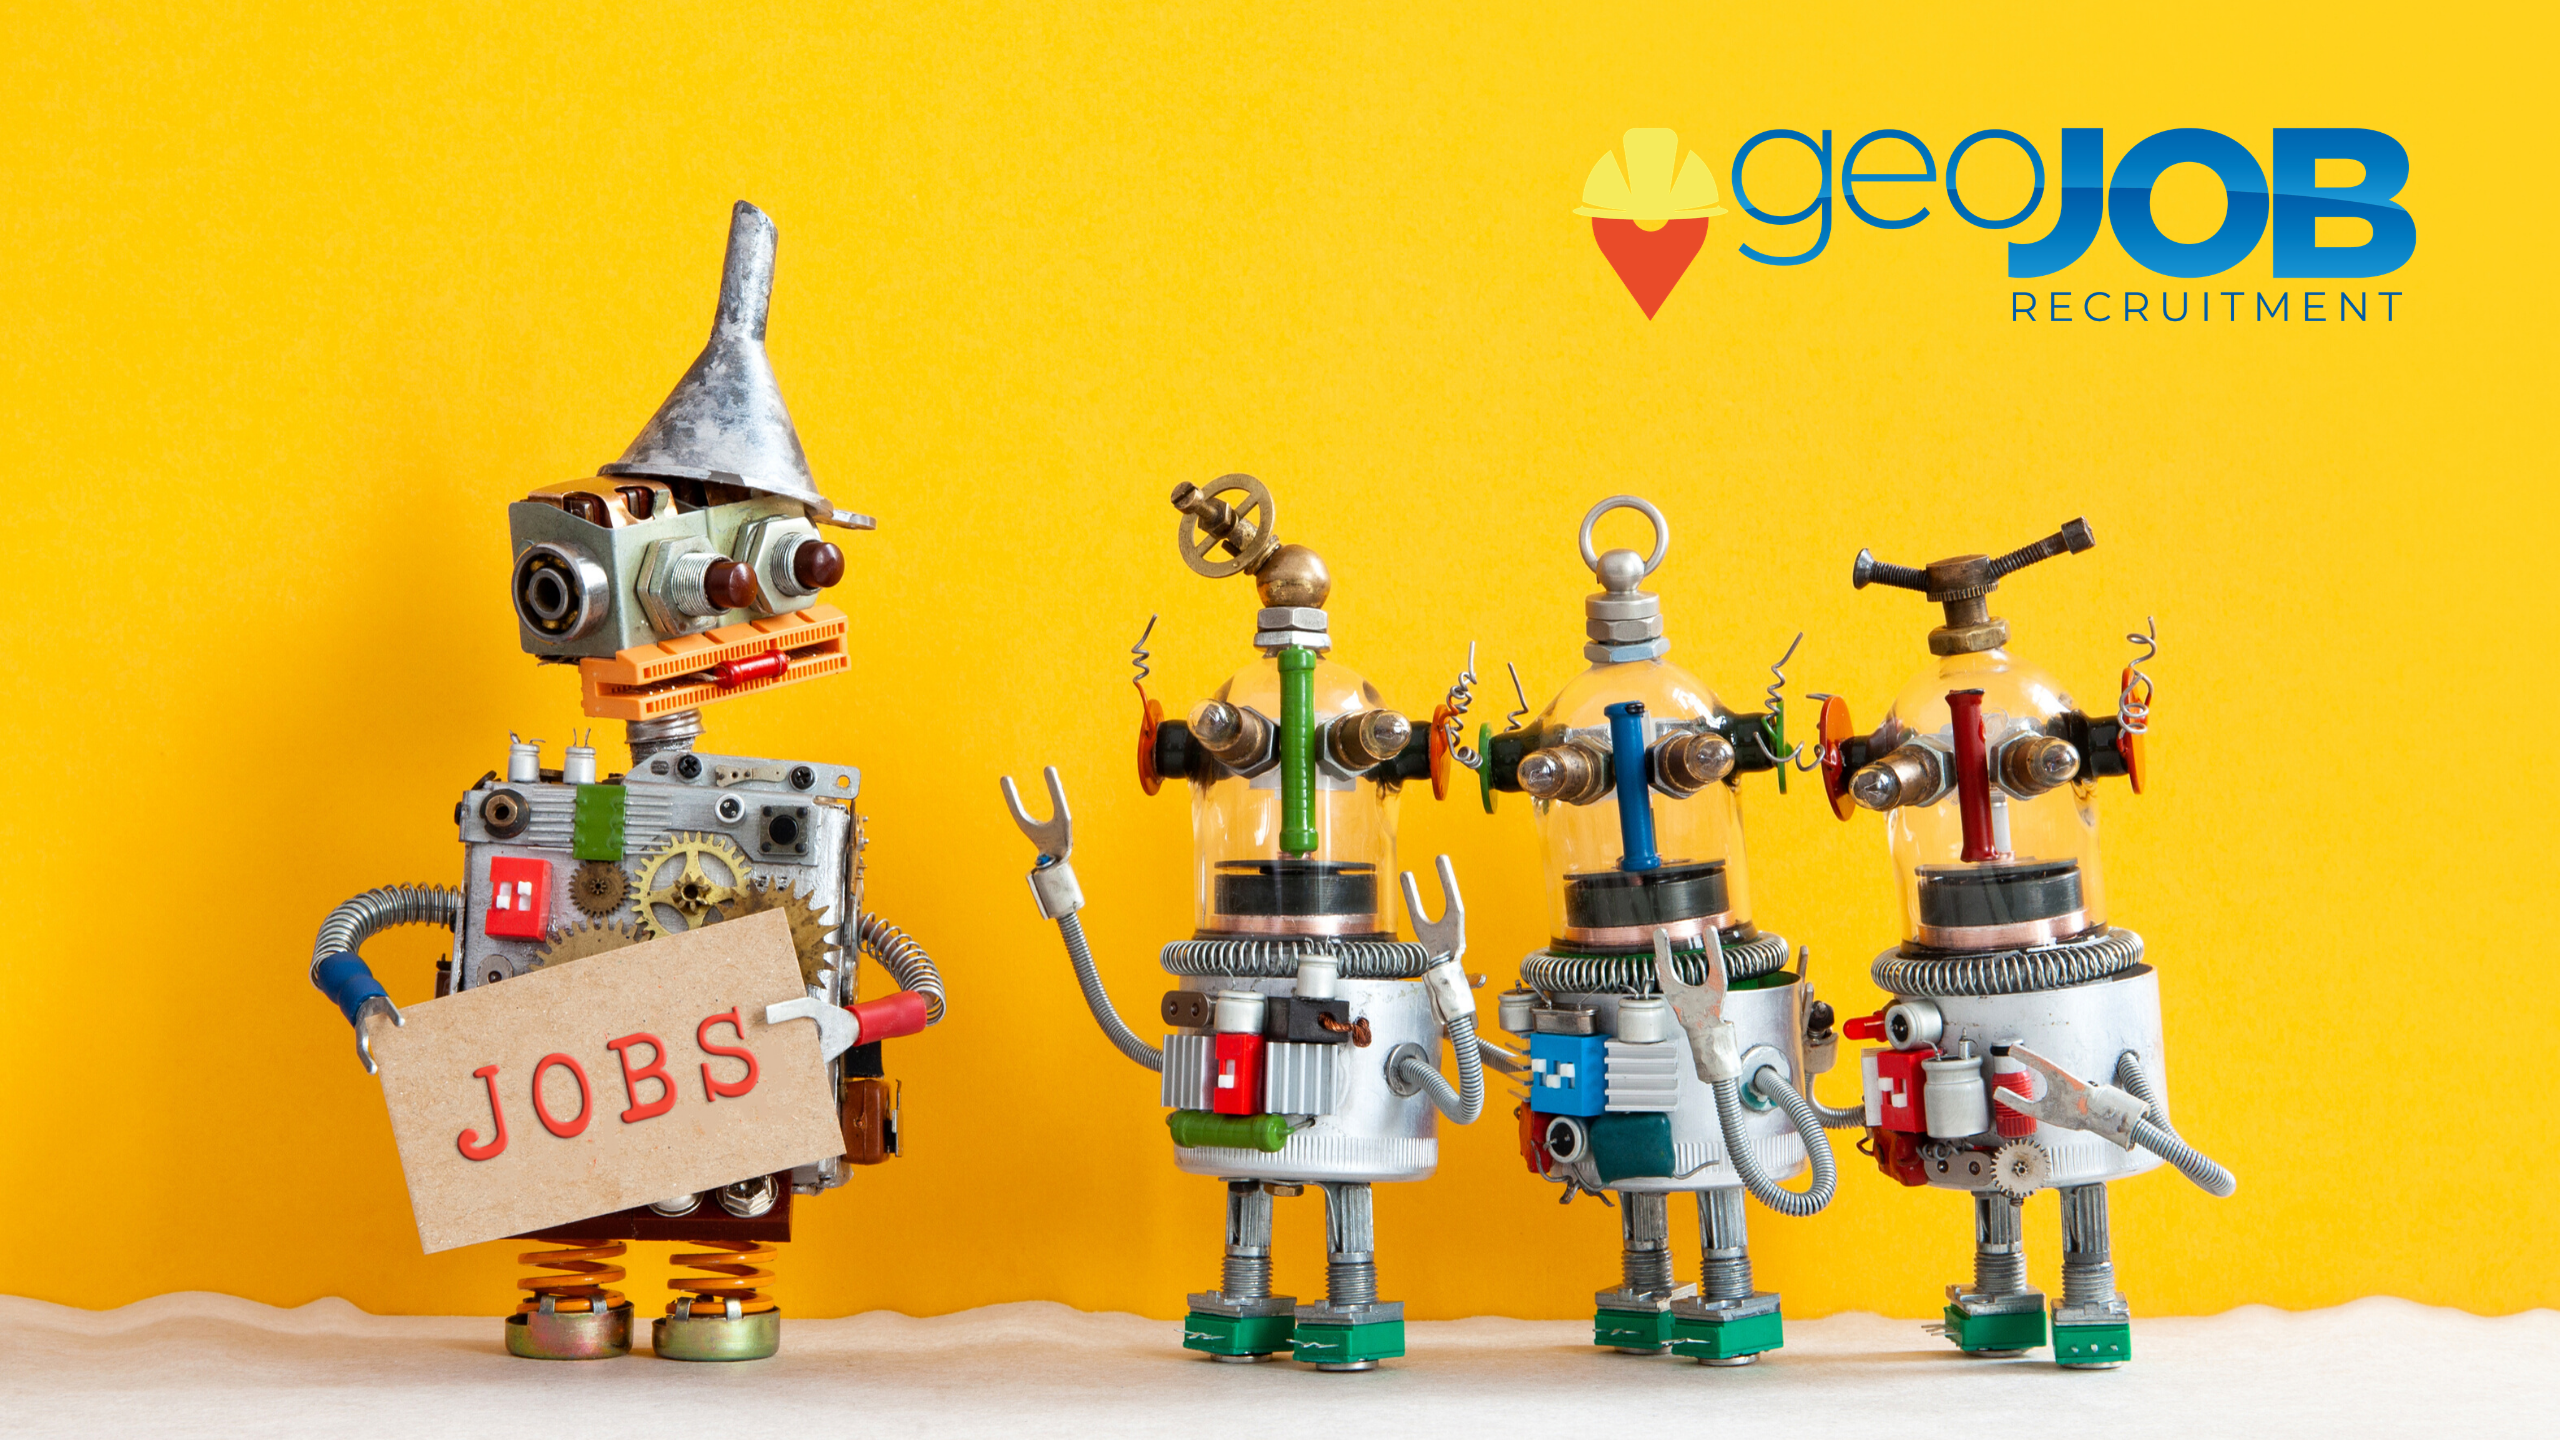 Geojob recruitment